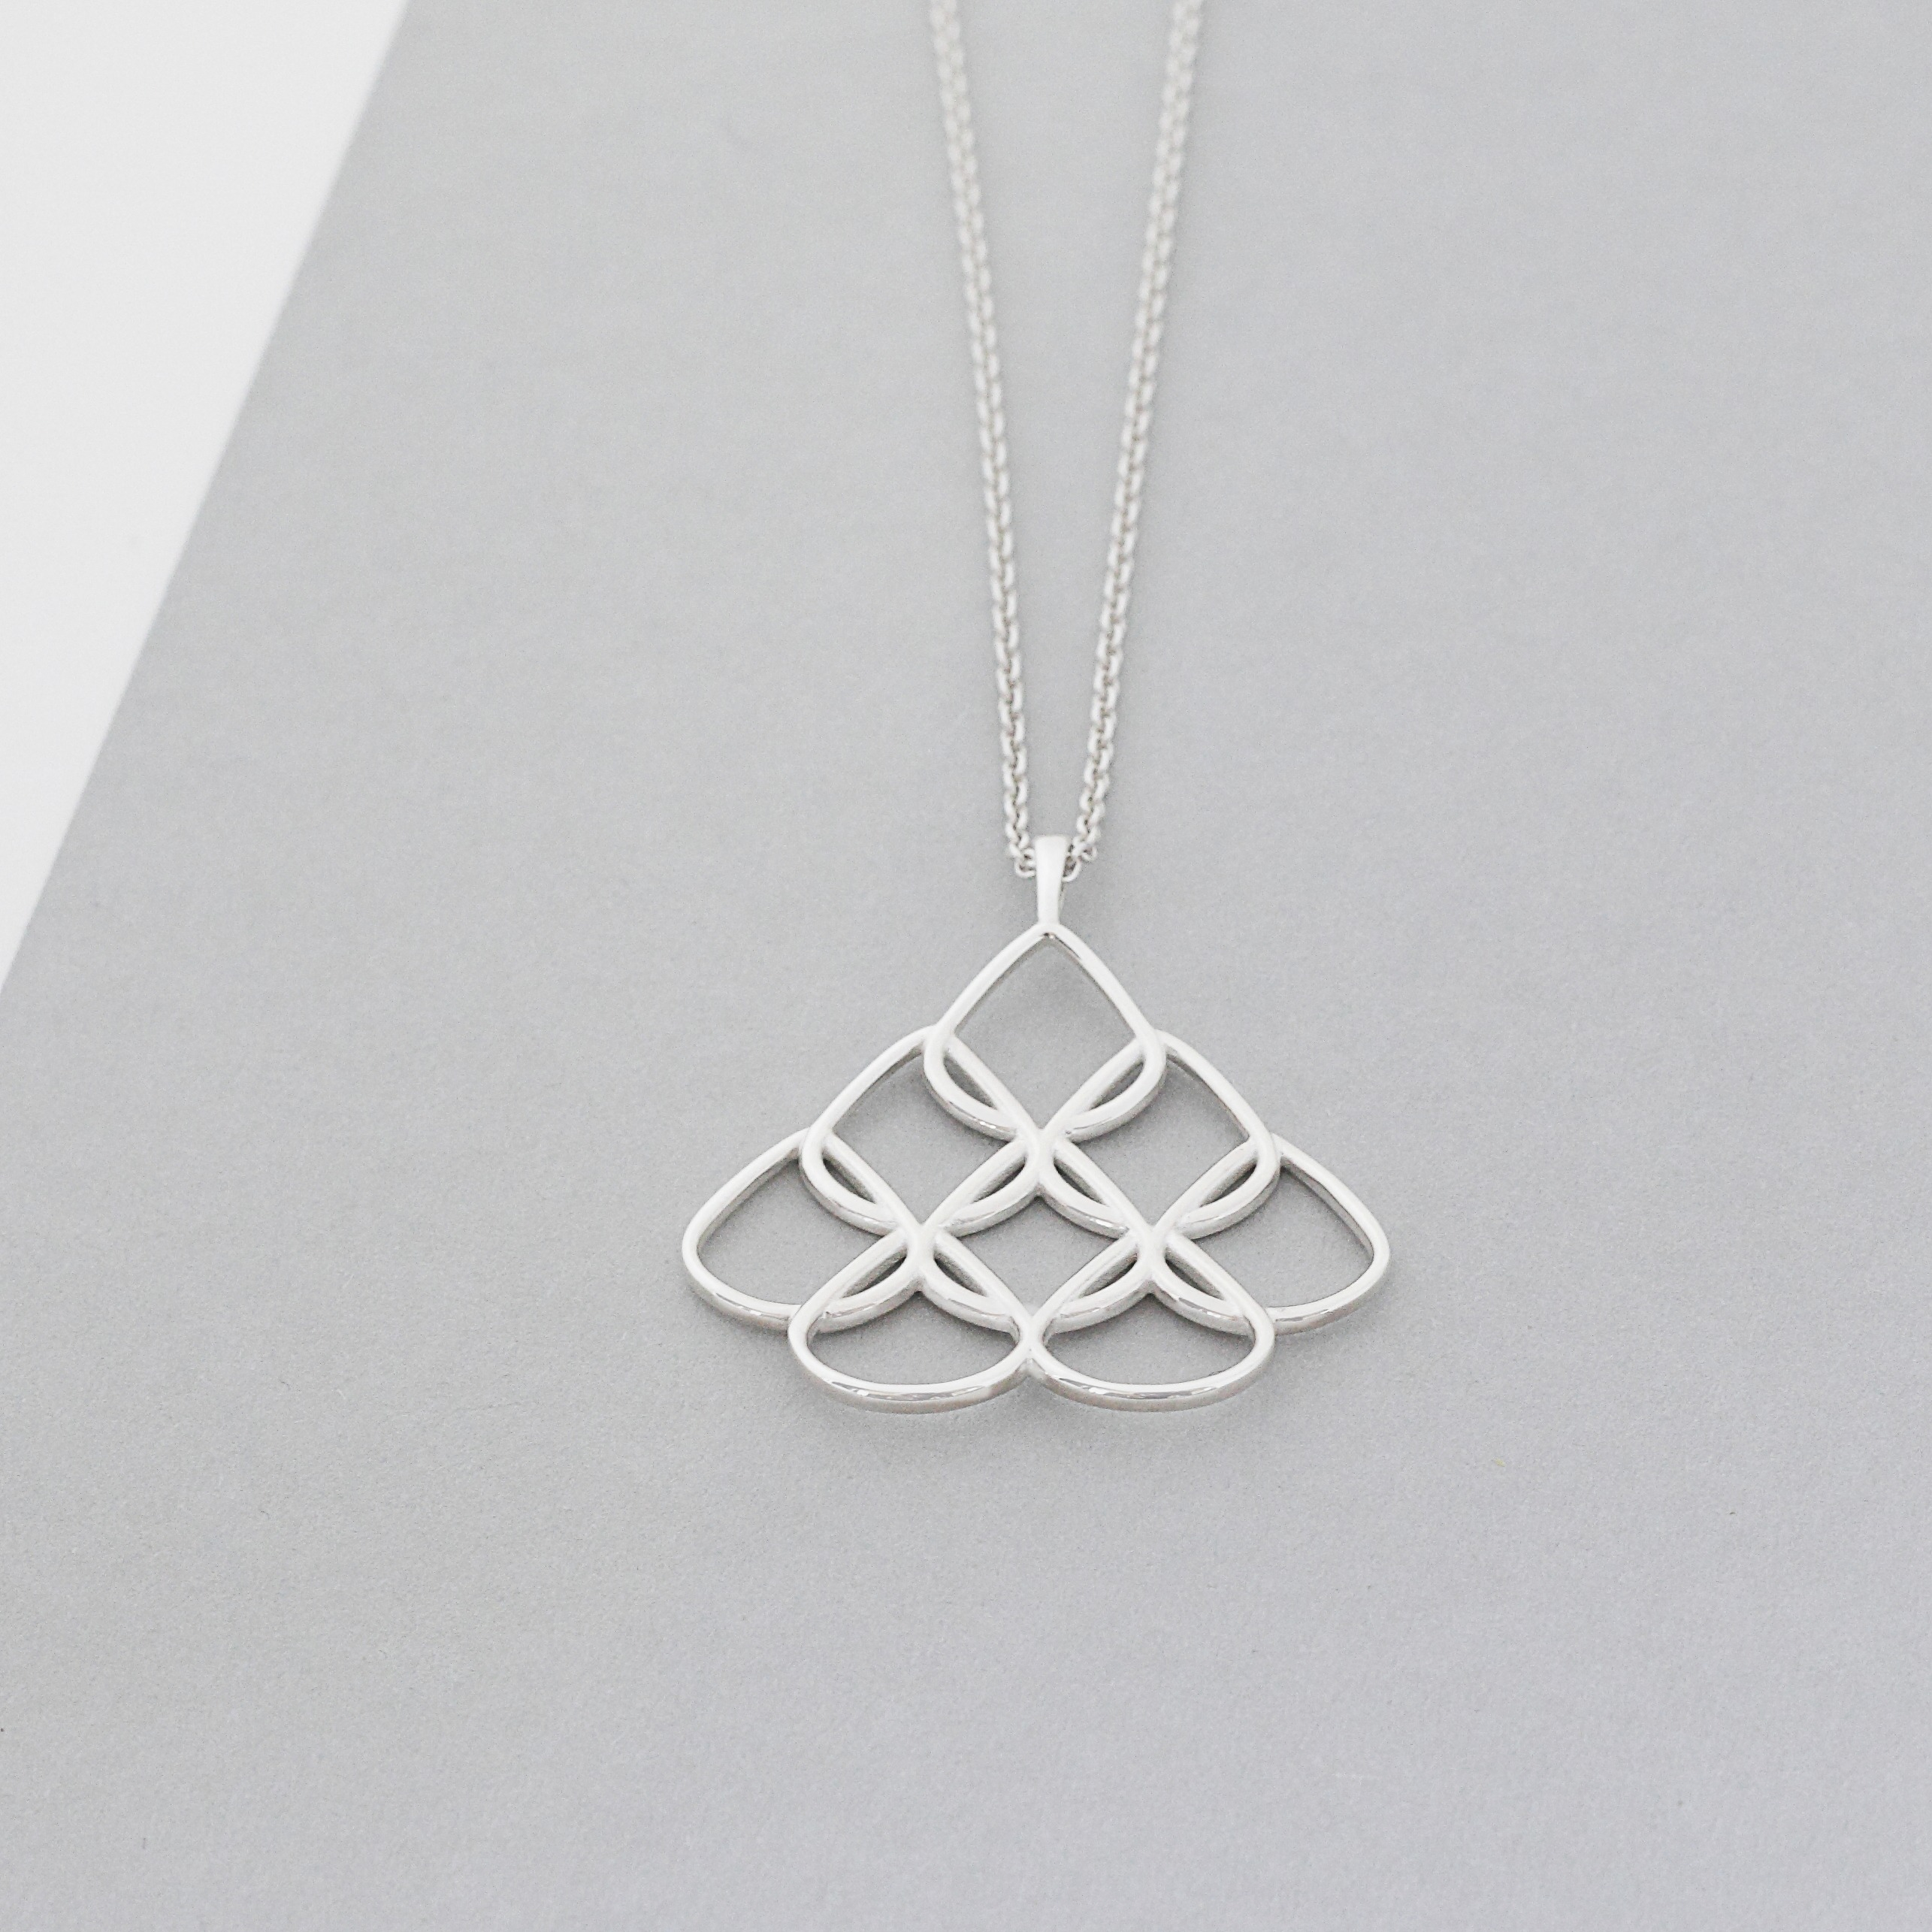 Small Sterling Silver Pendant